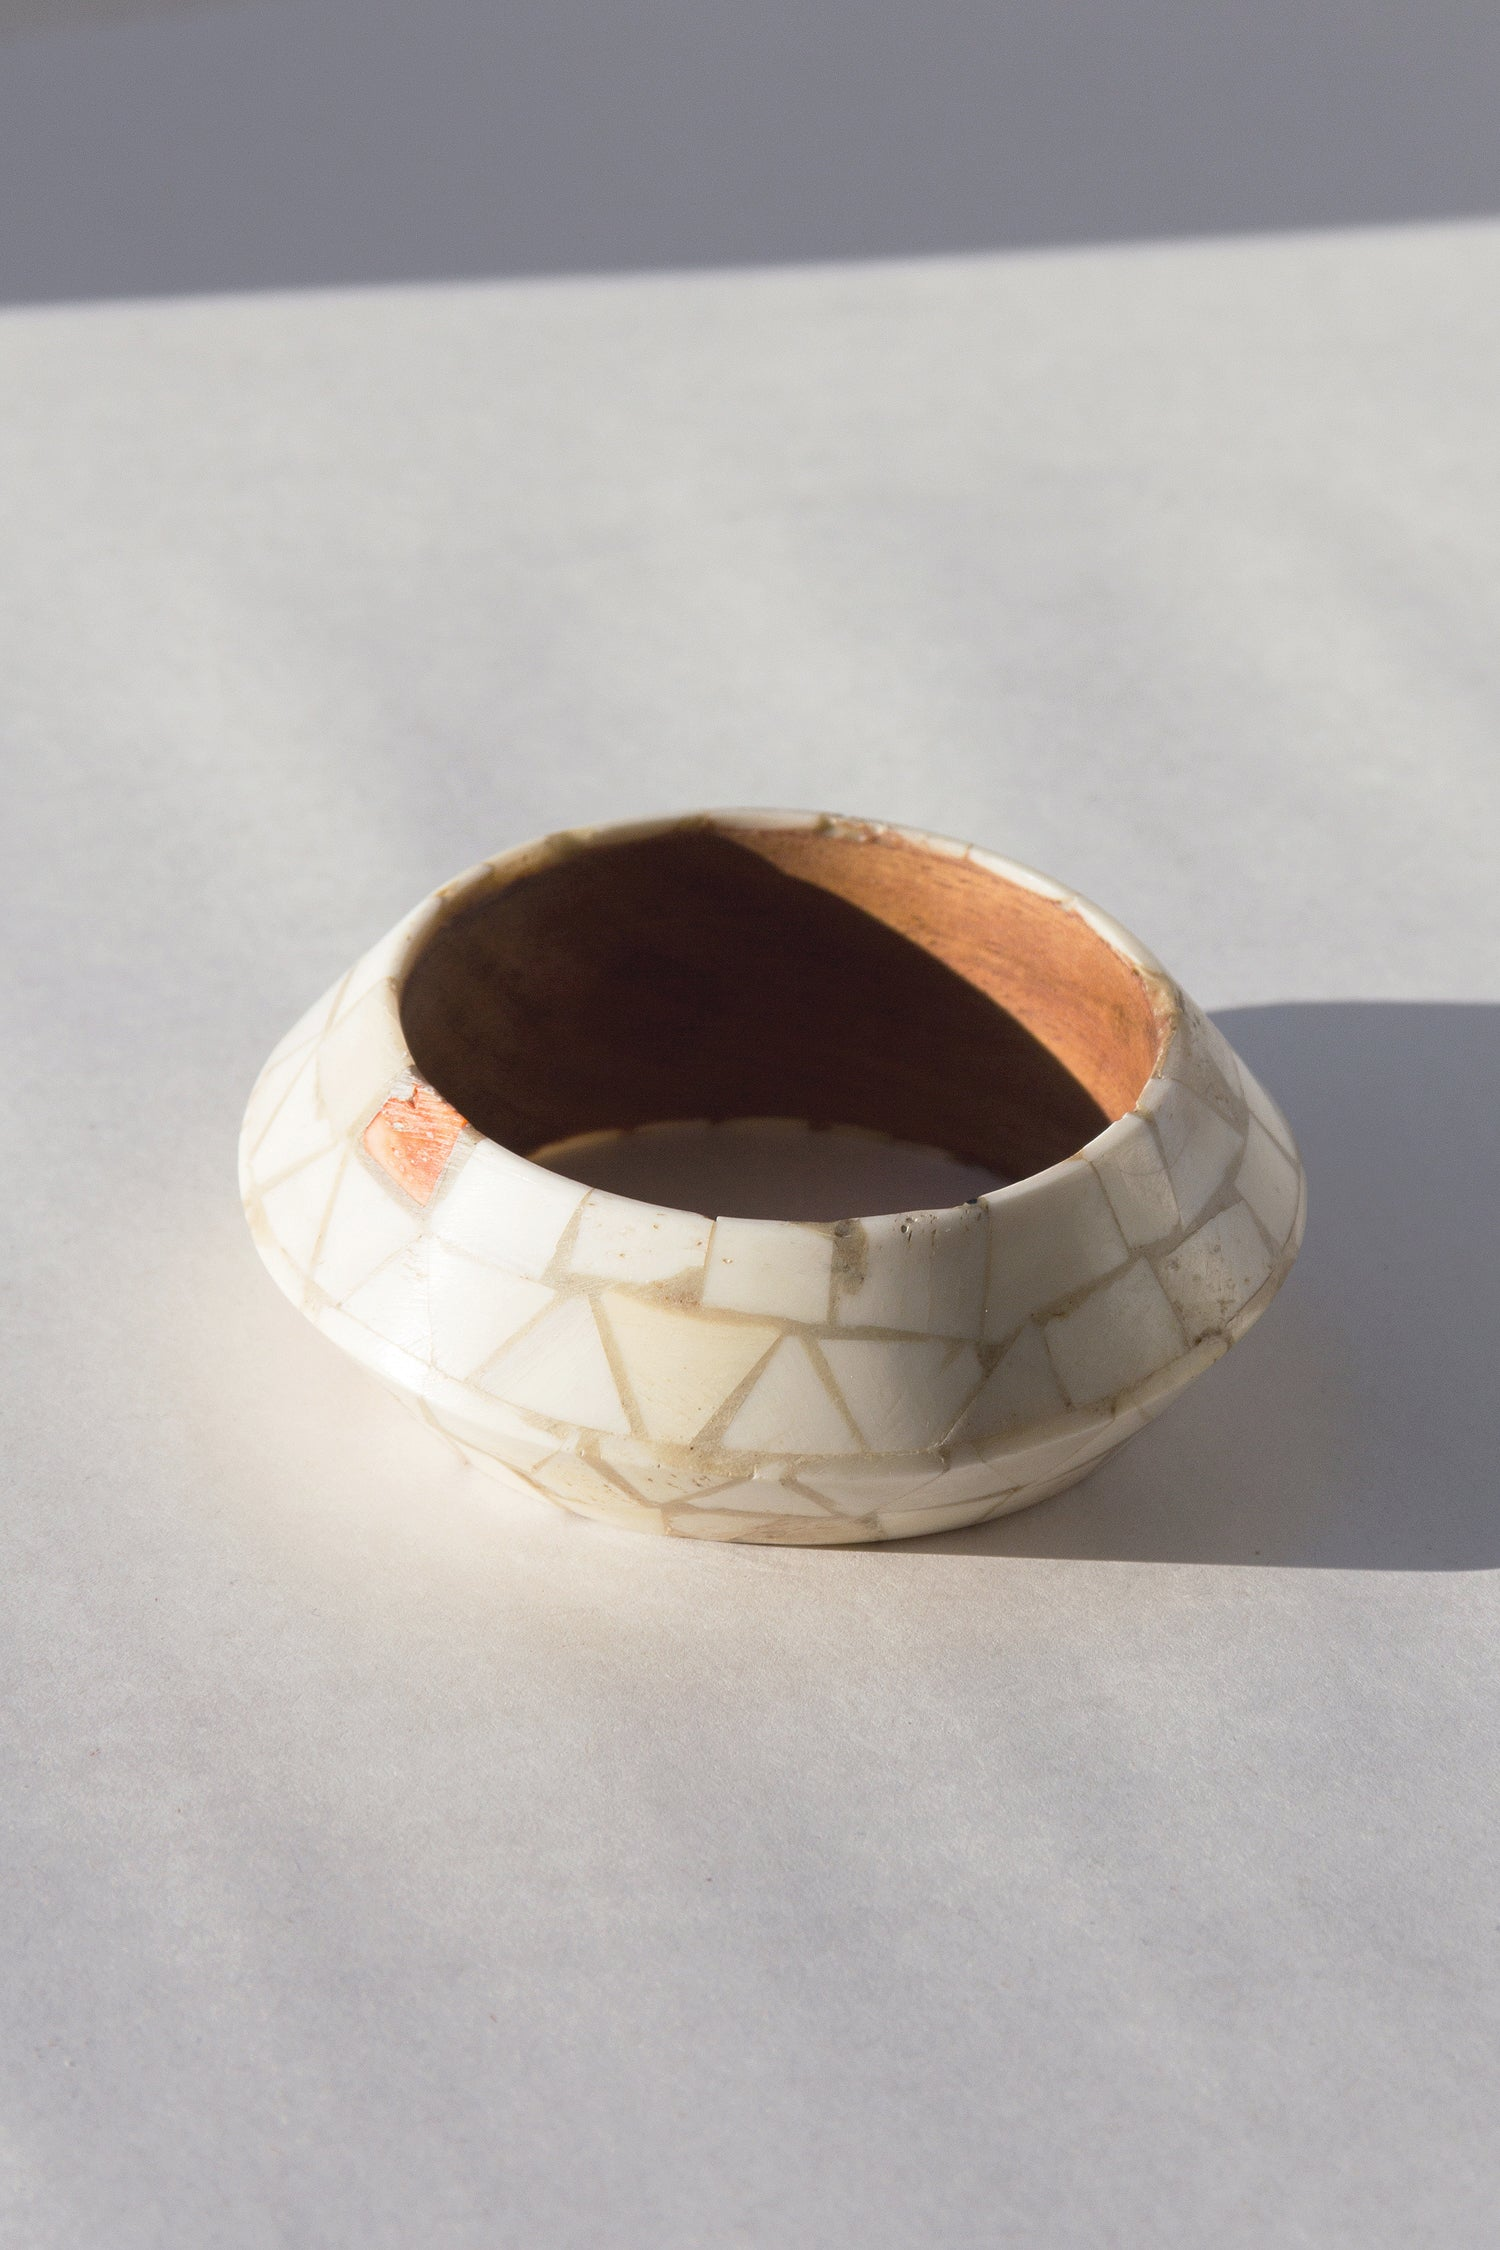 1970s Inlaid Bone & Agate Bangle